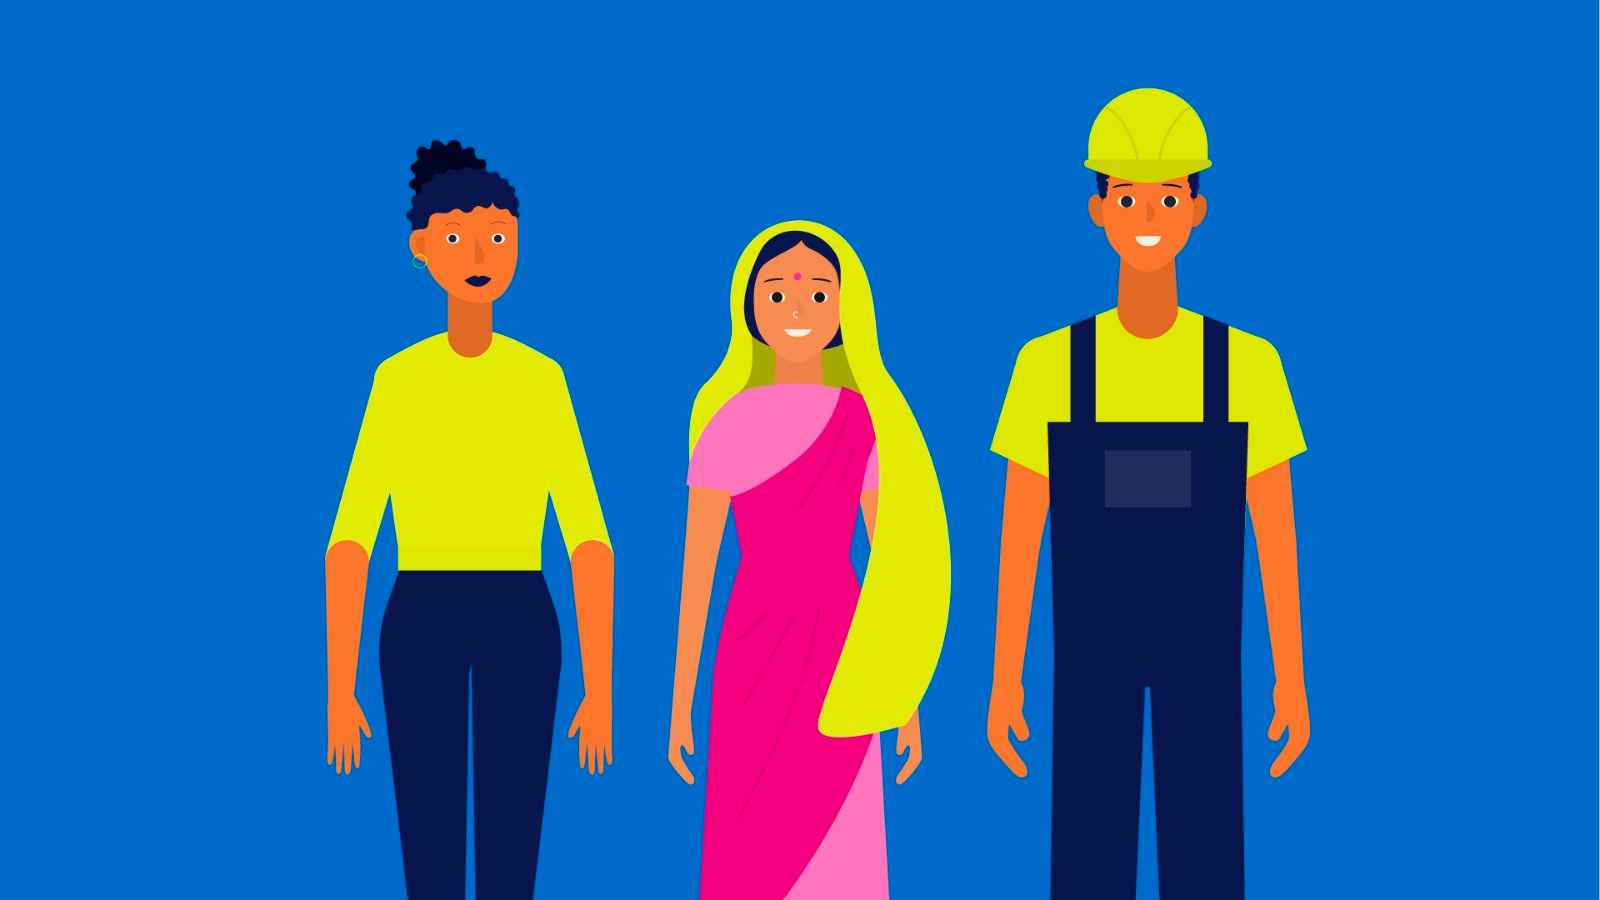 Equality of Rights in Animated Corporate Video